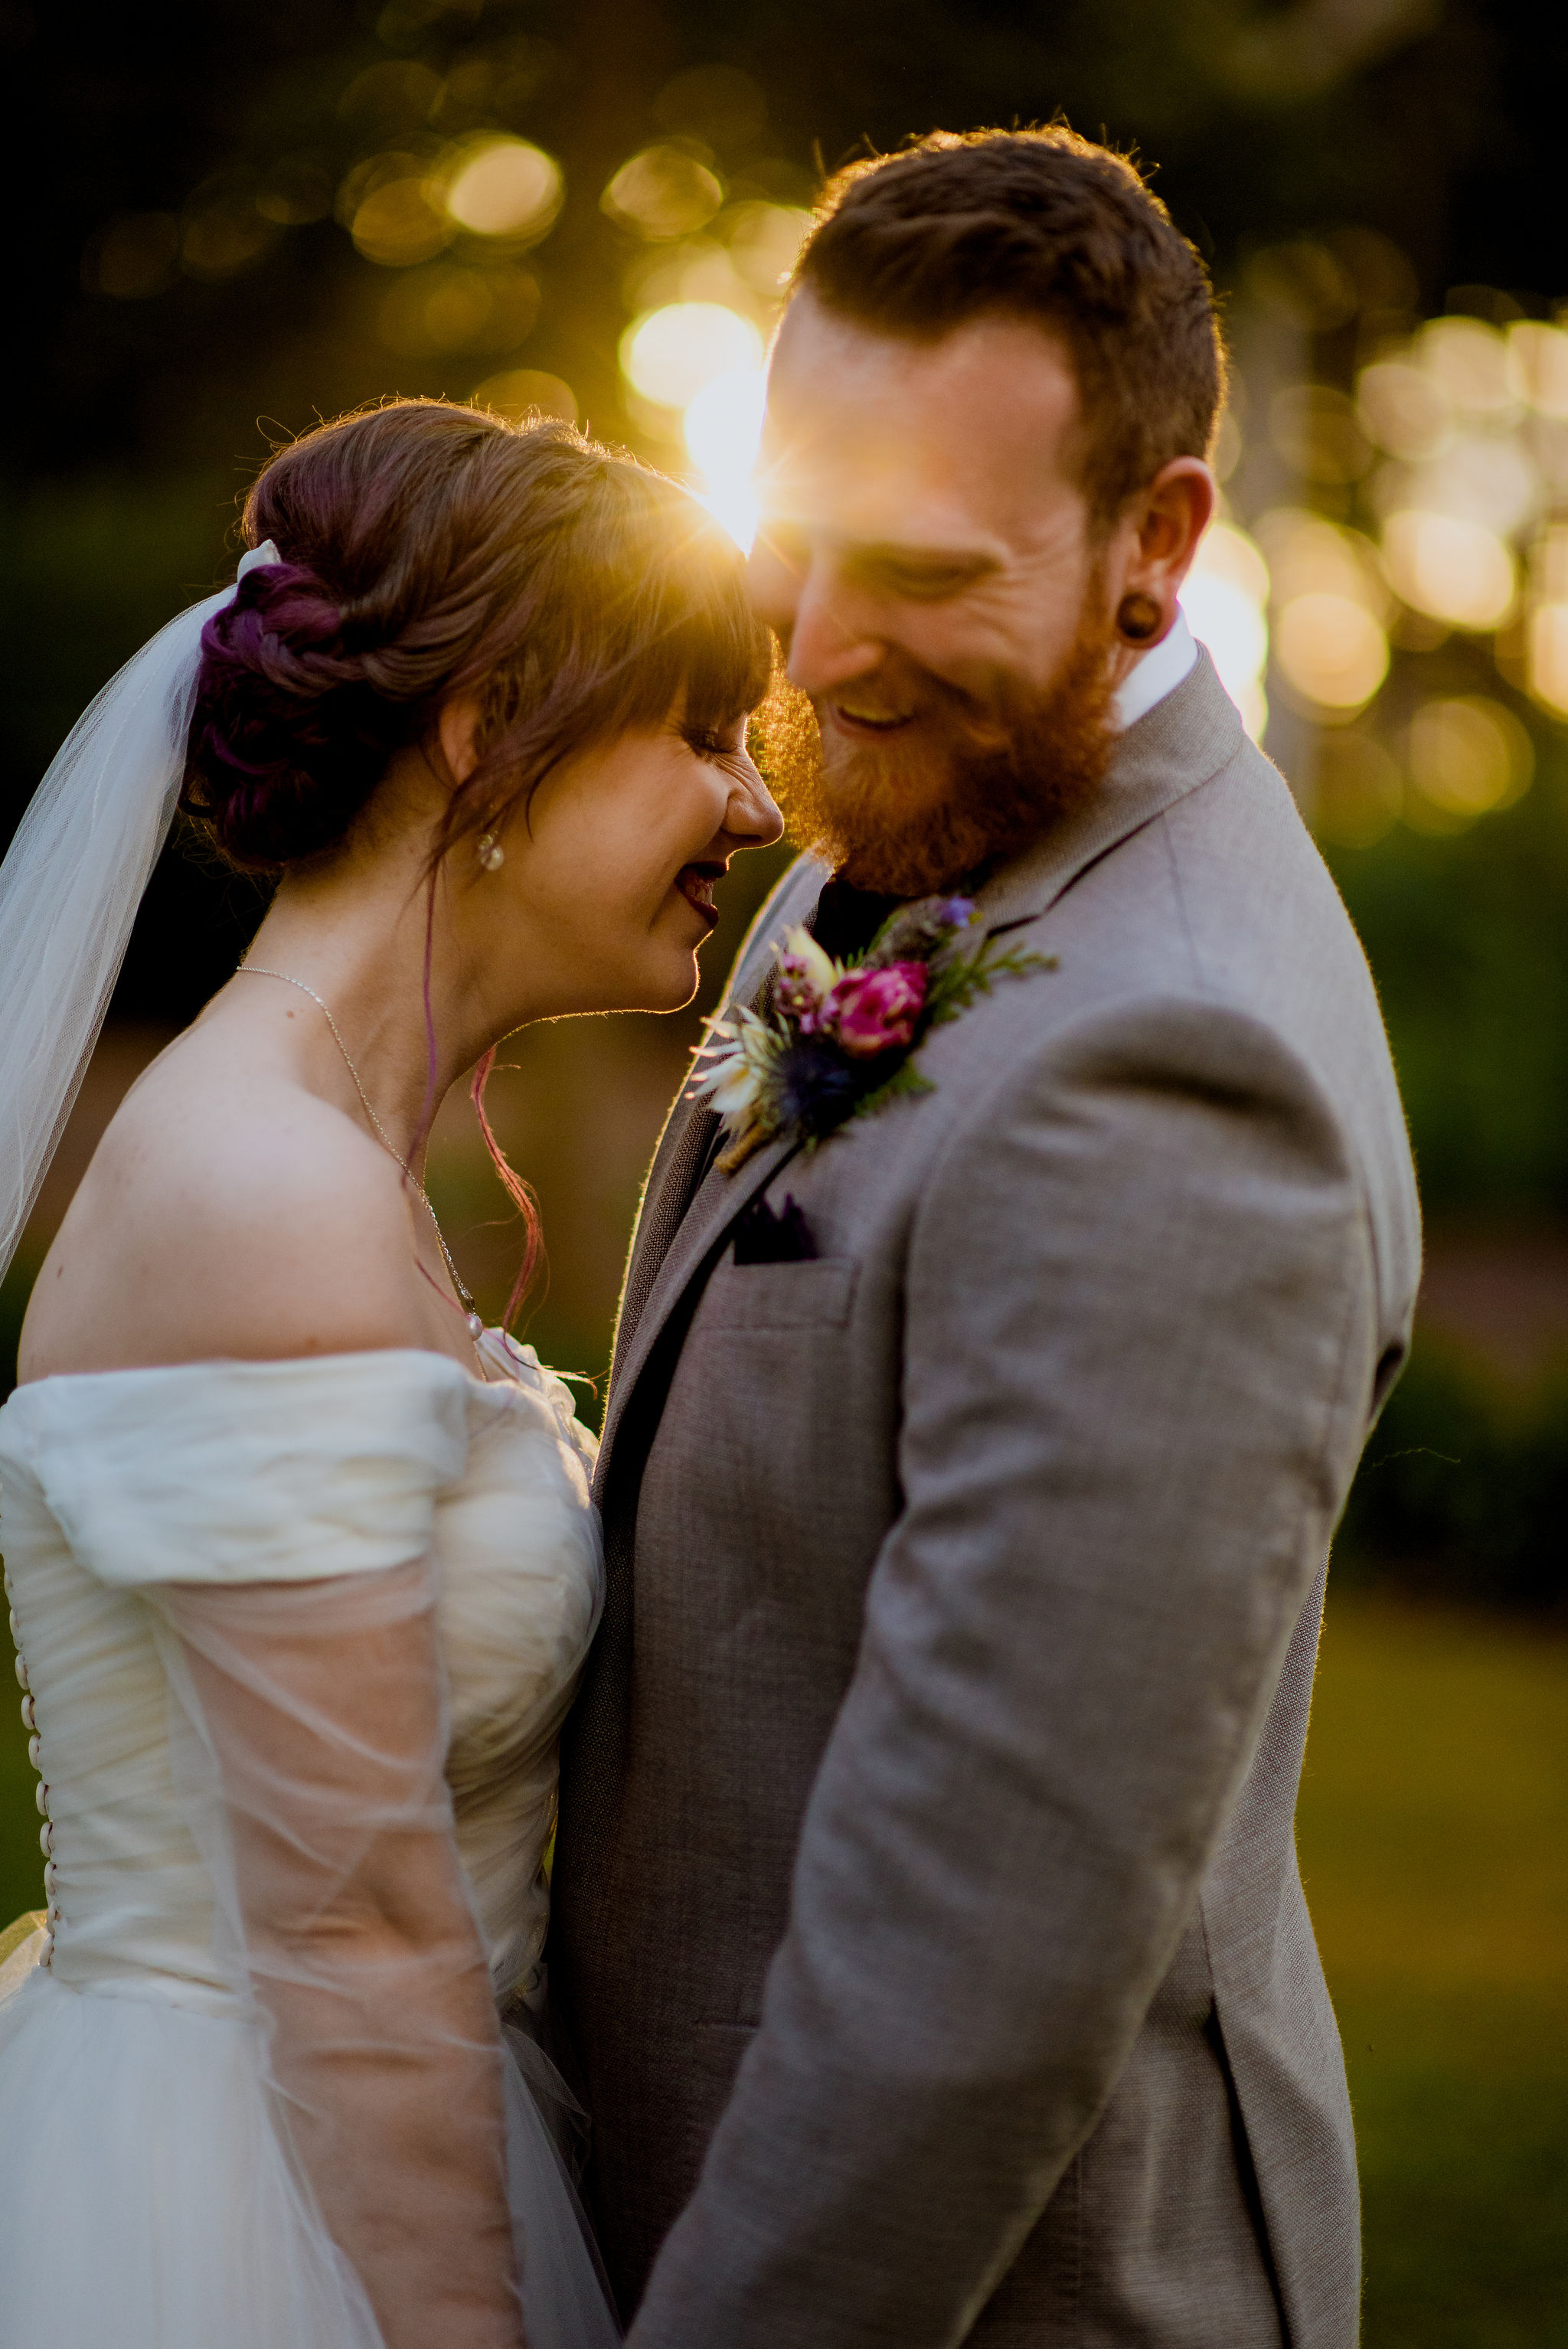 Newlywed bride and groom laugh together with sunset behind them